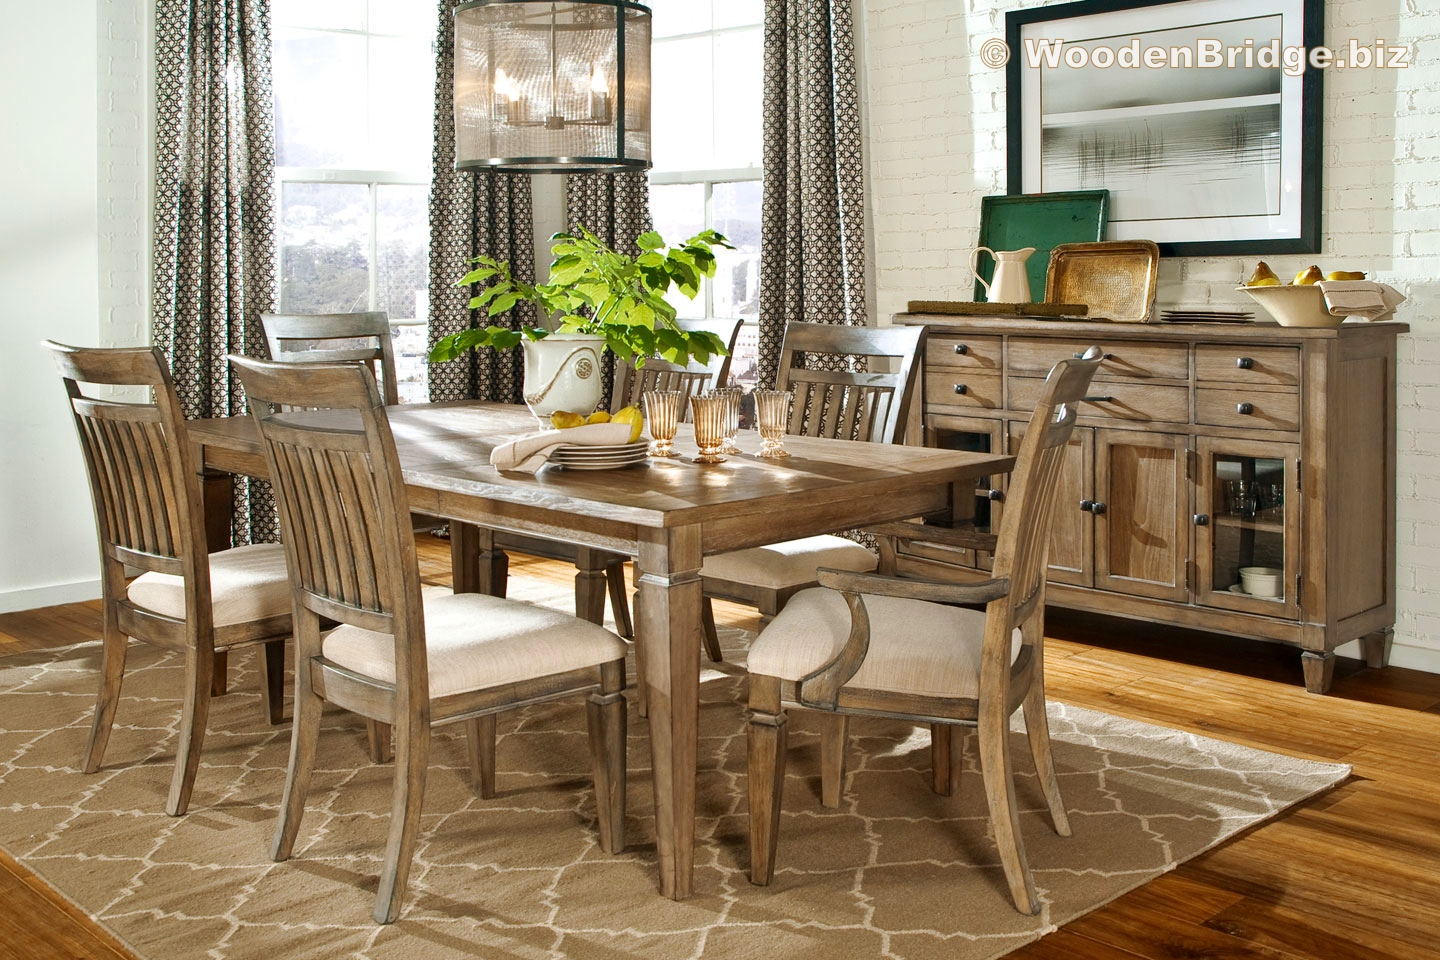 Reclaimed Wood Dining Table Ideas - 1440 x 960